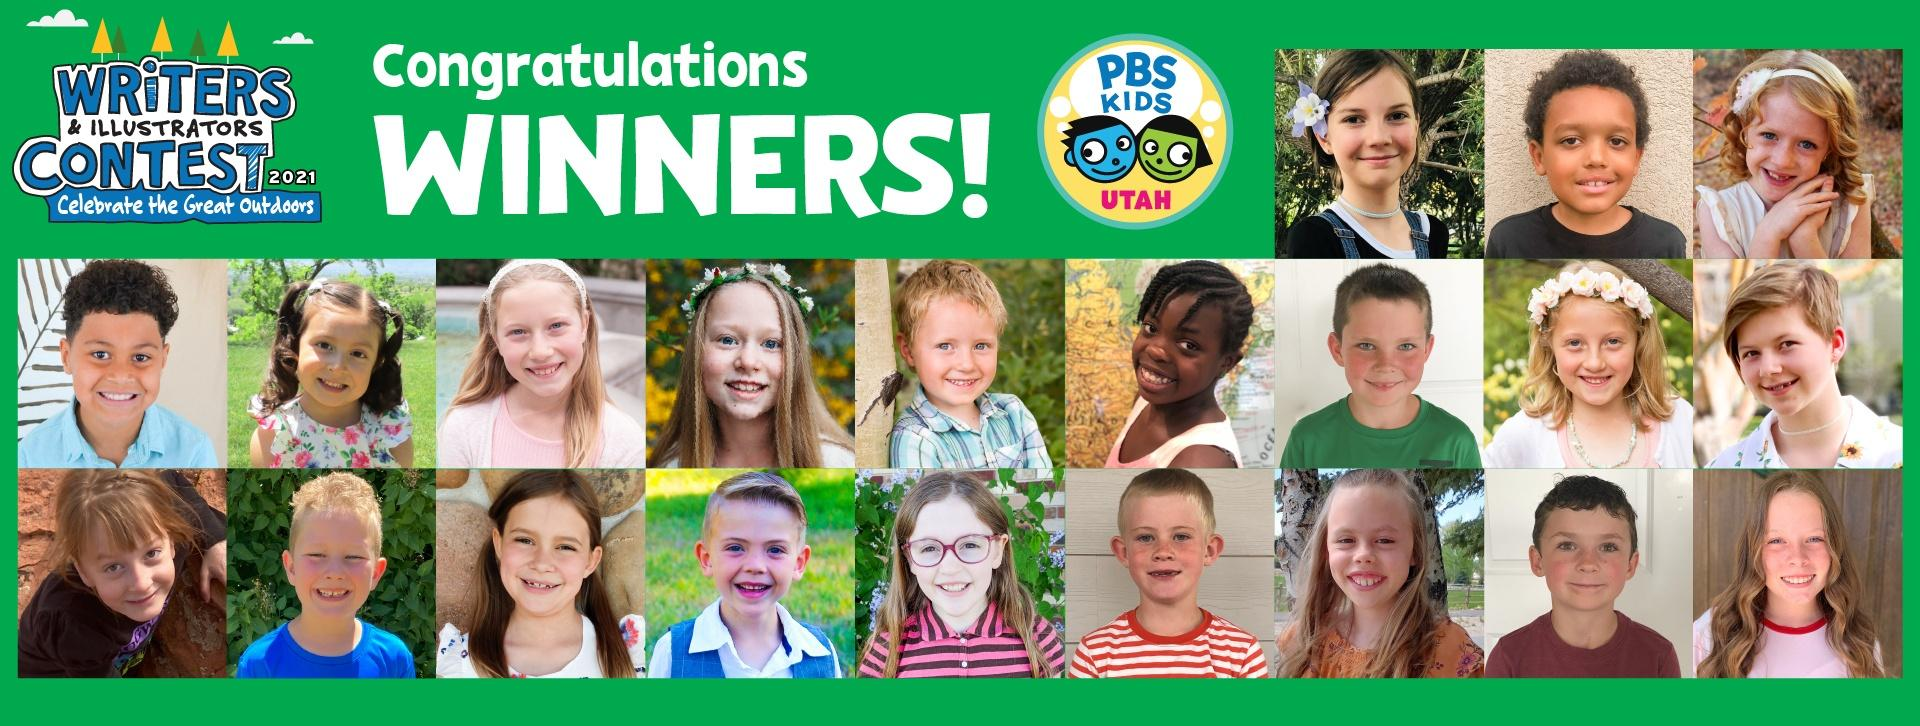 Congratulations Winners! 2021 Writers and Illustrators Contest - Celebrate the Outdoors